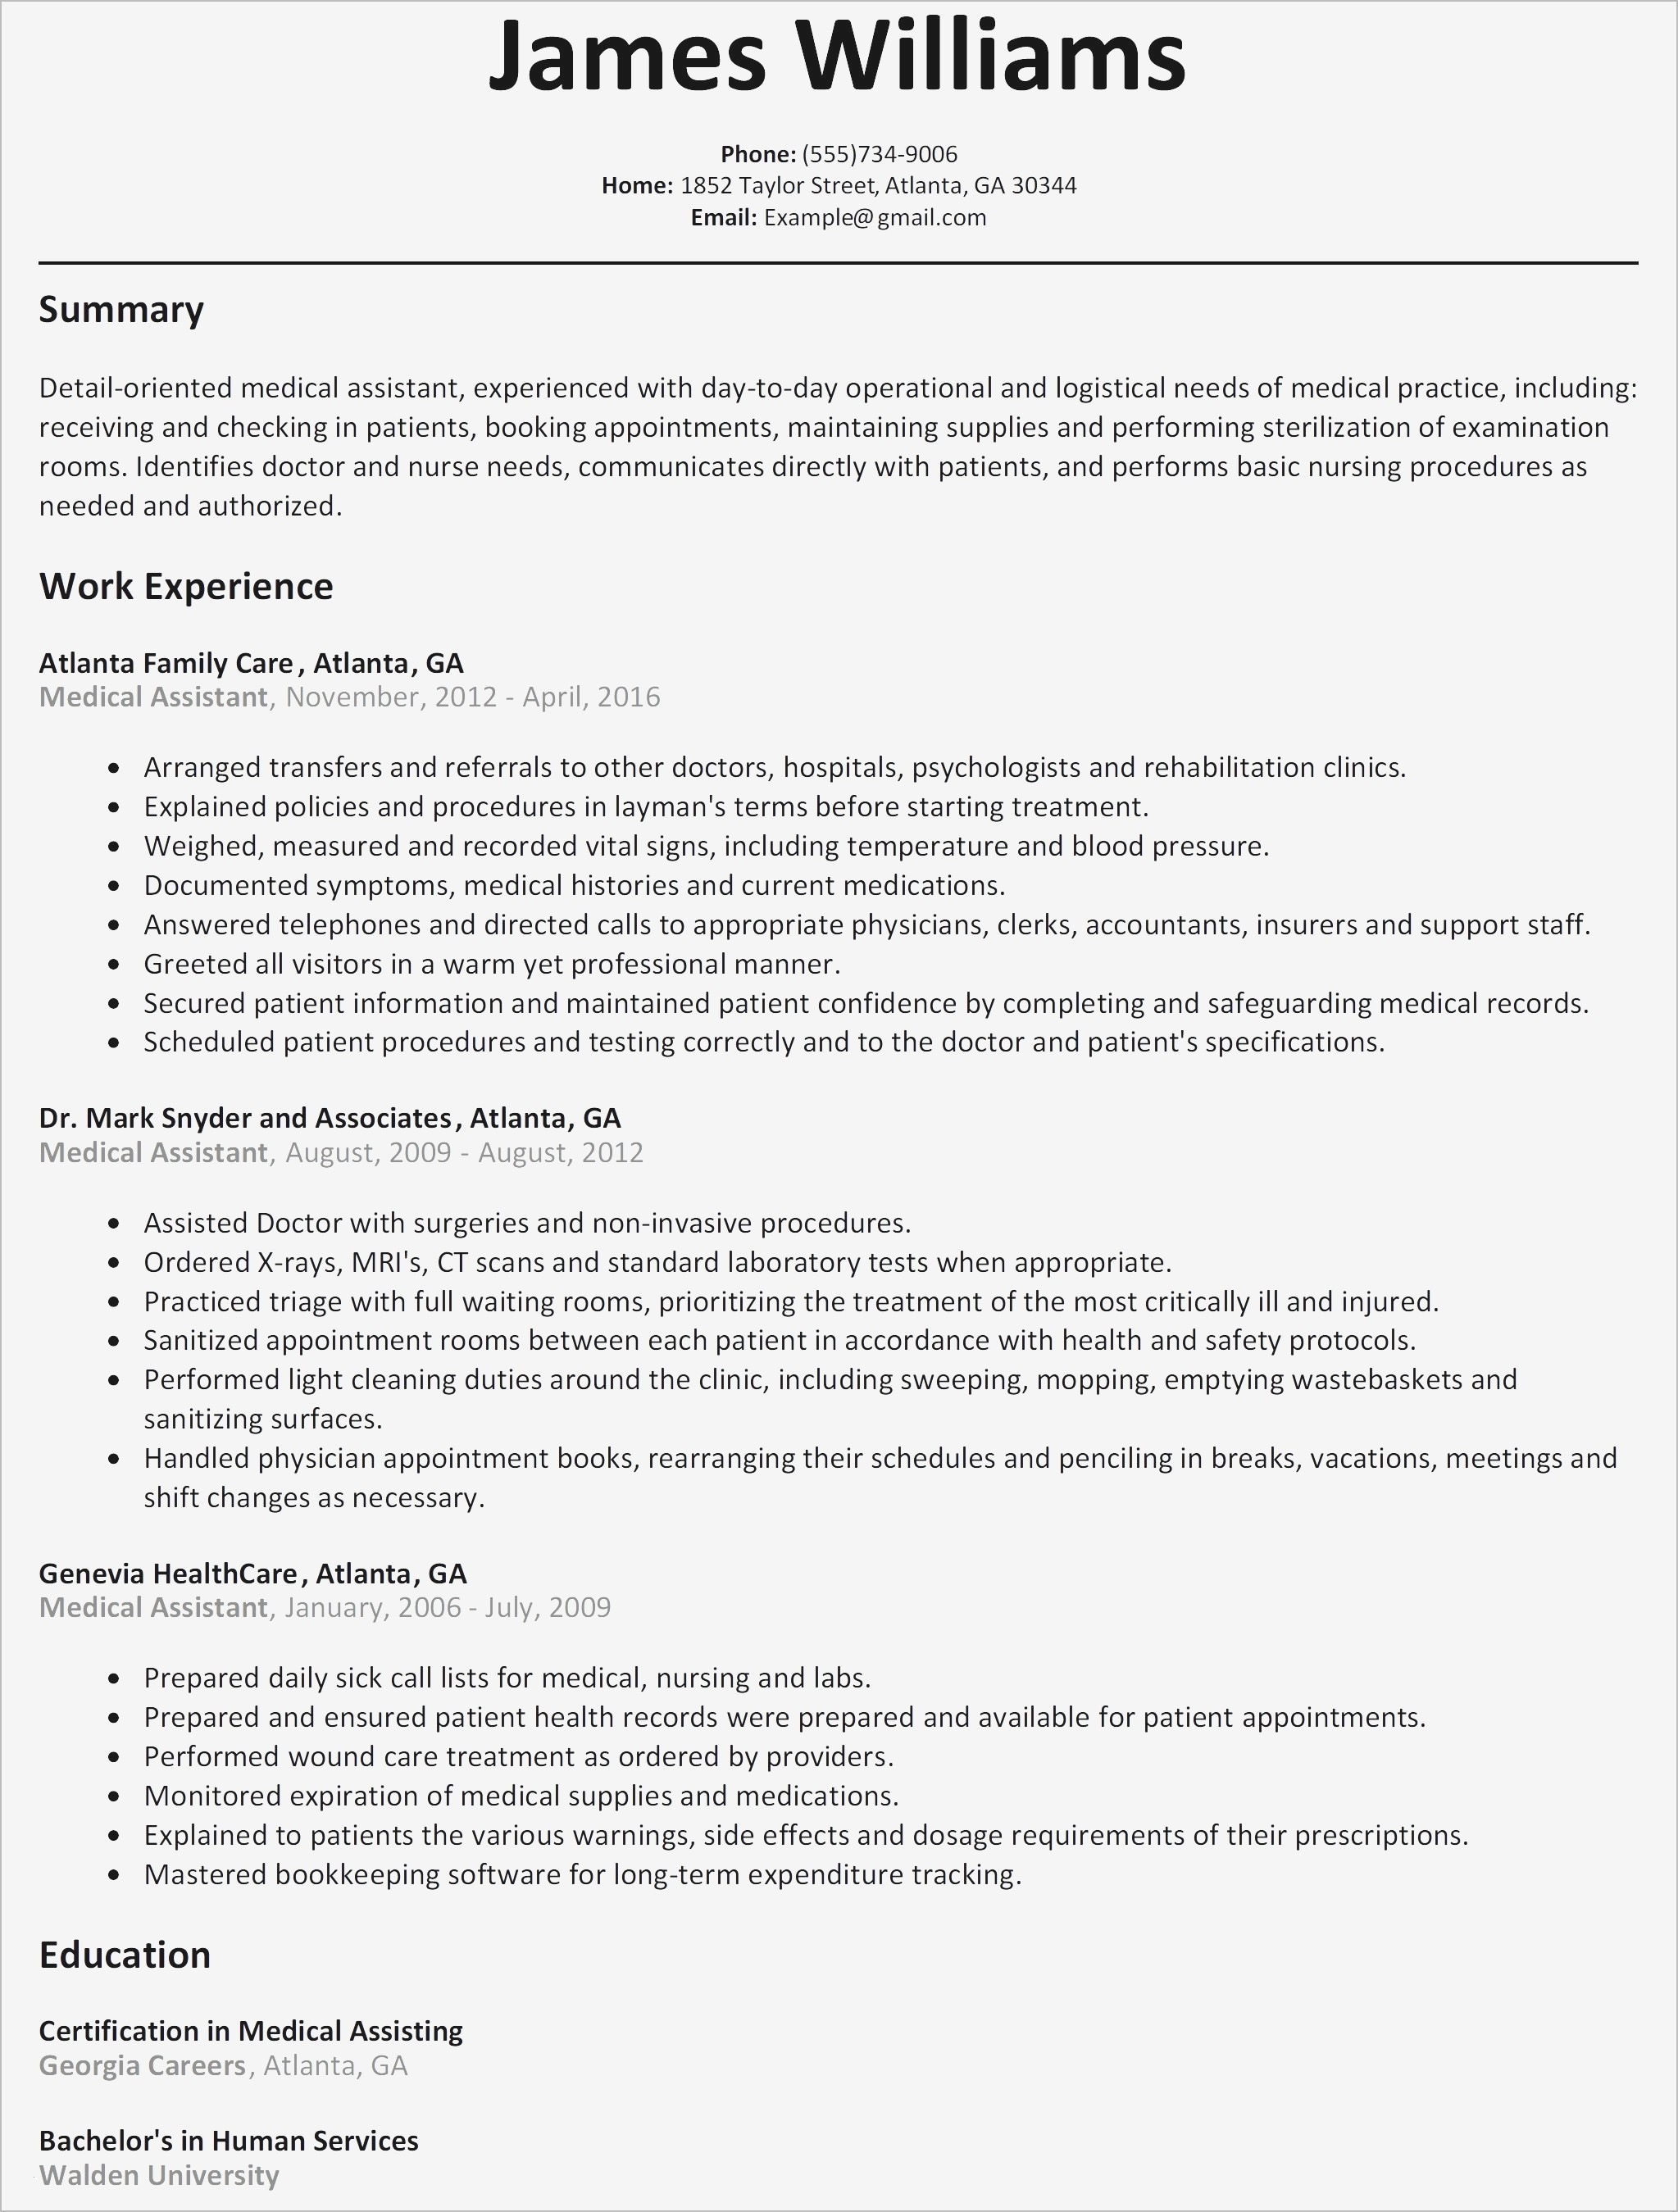 Child Care Resume - Child Care Resume Paragraphrewriter Paragraphrewriter